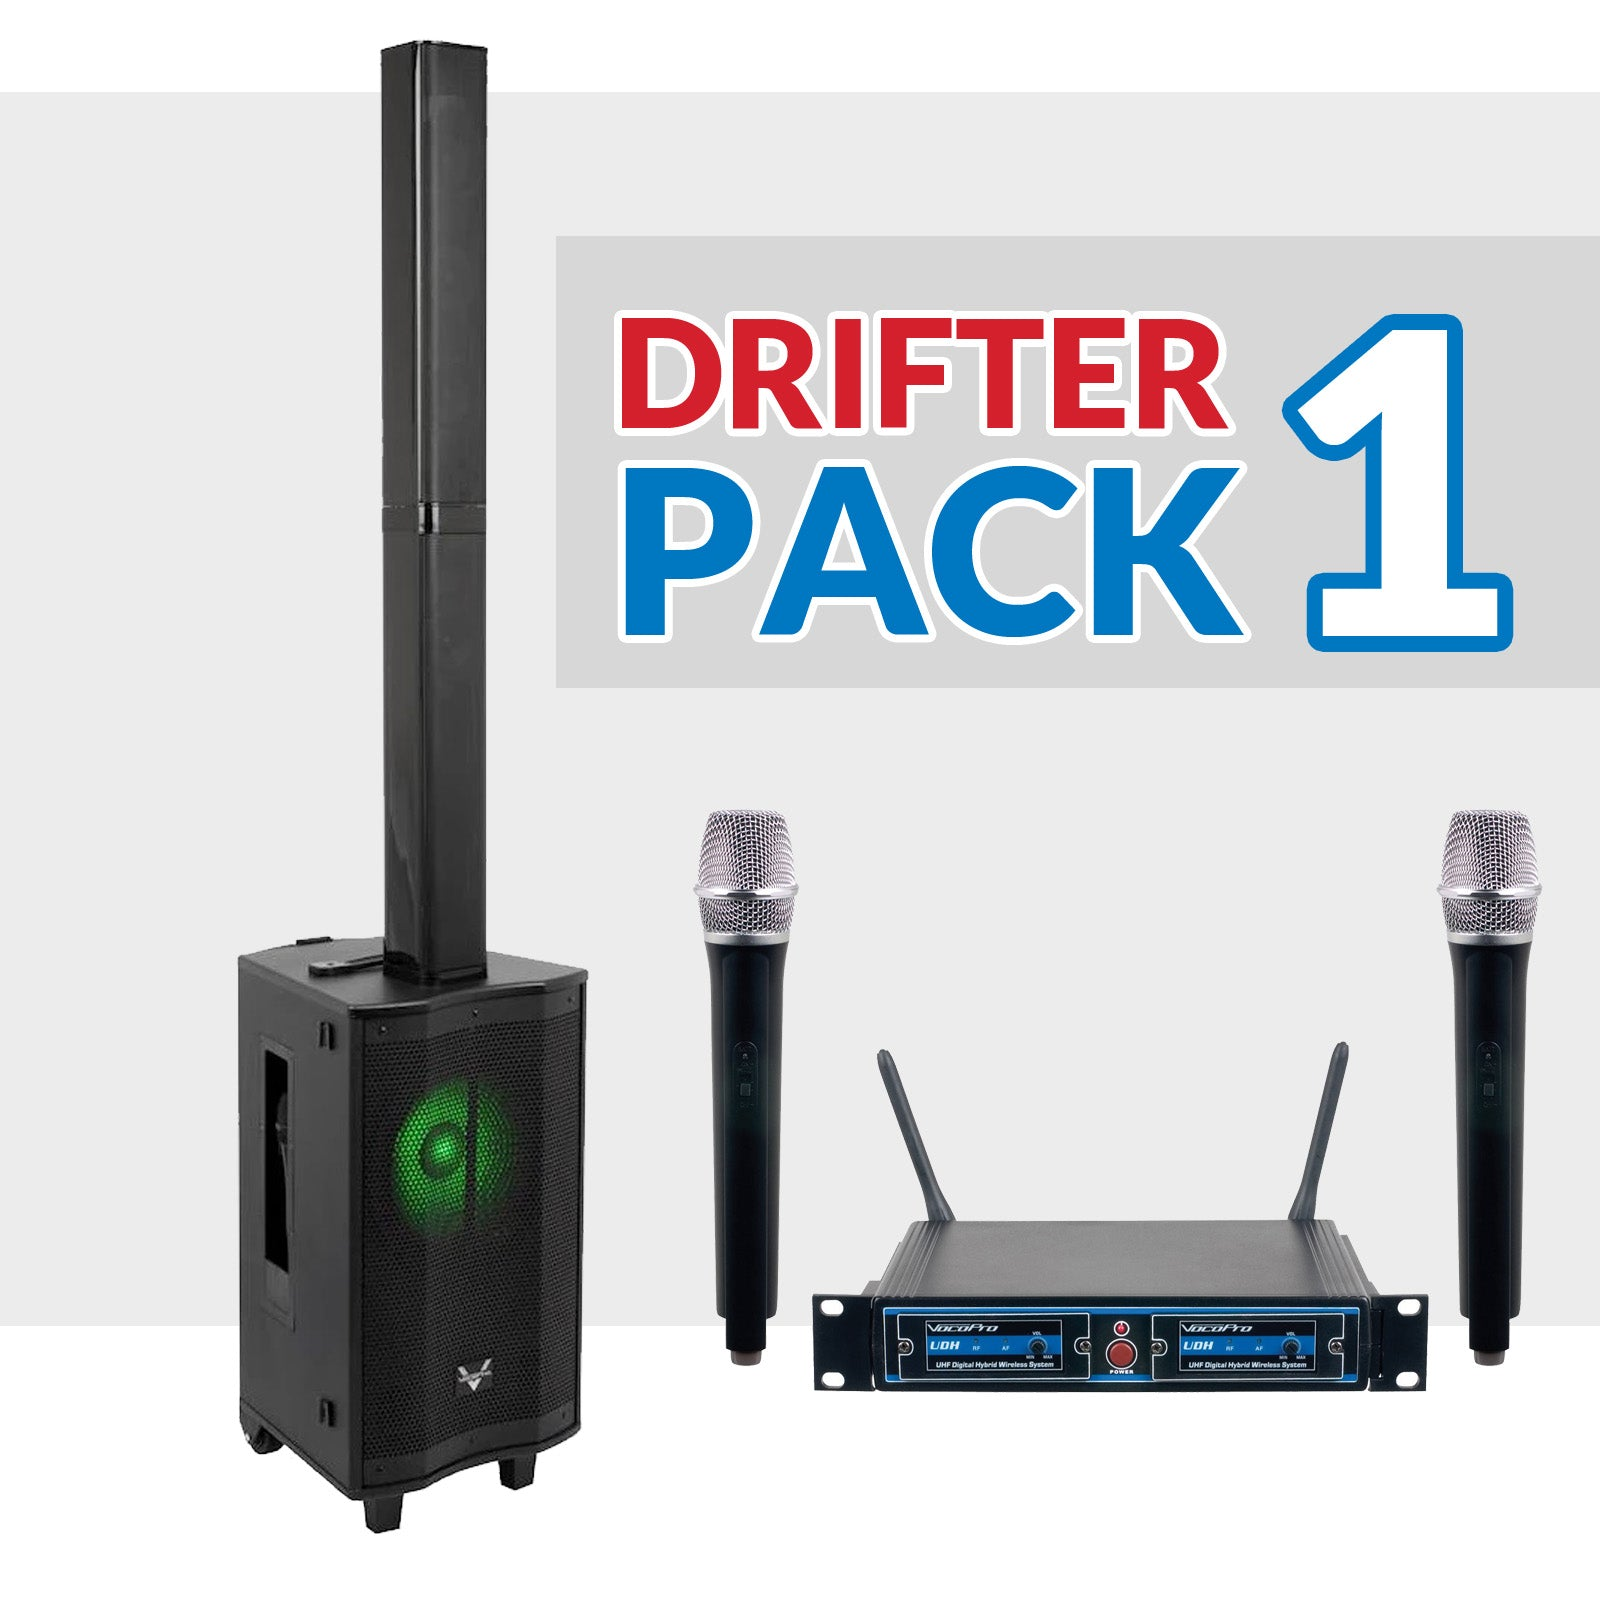 Drifter Package 01: VocoPro Drifter + UDH-Dual-H Microphones